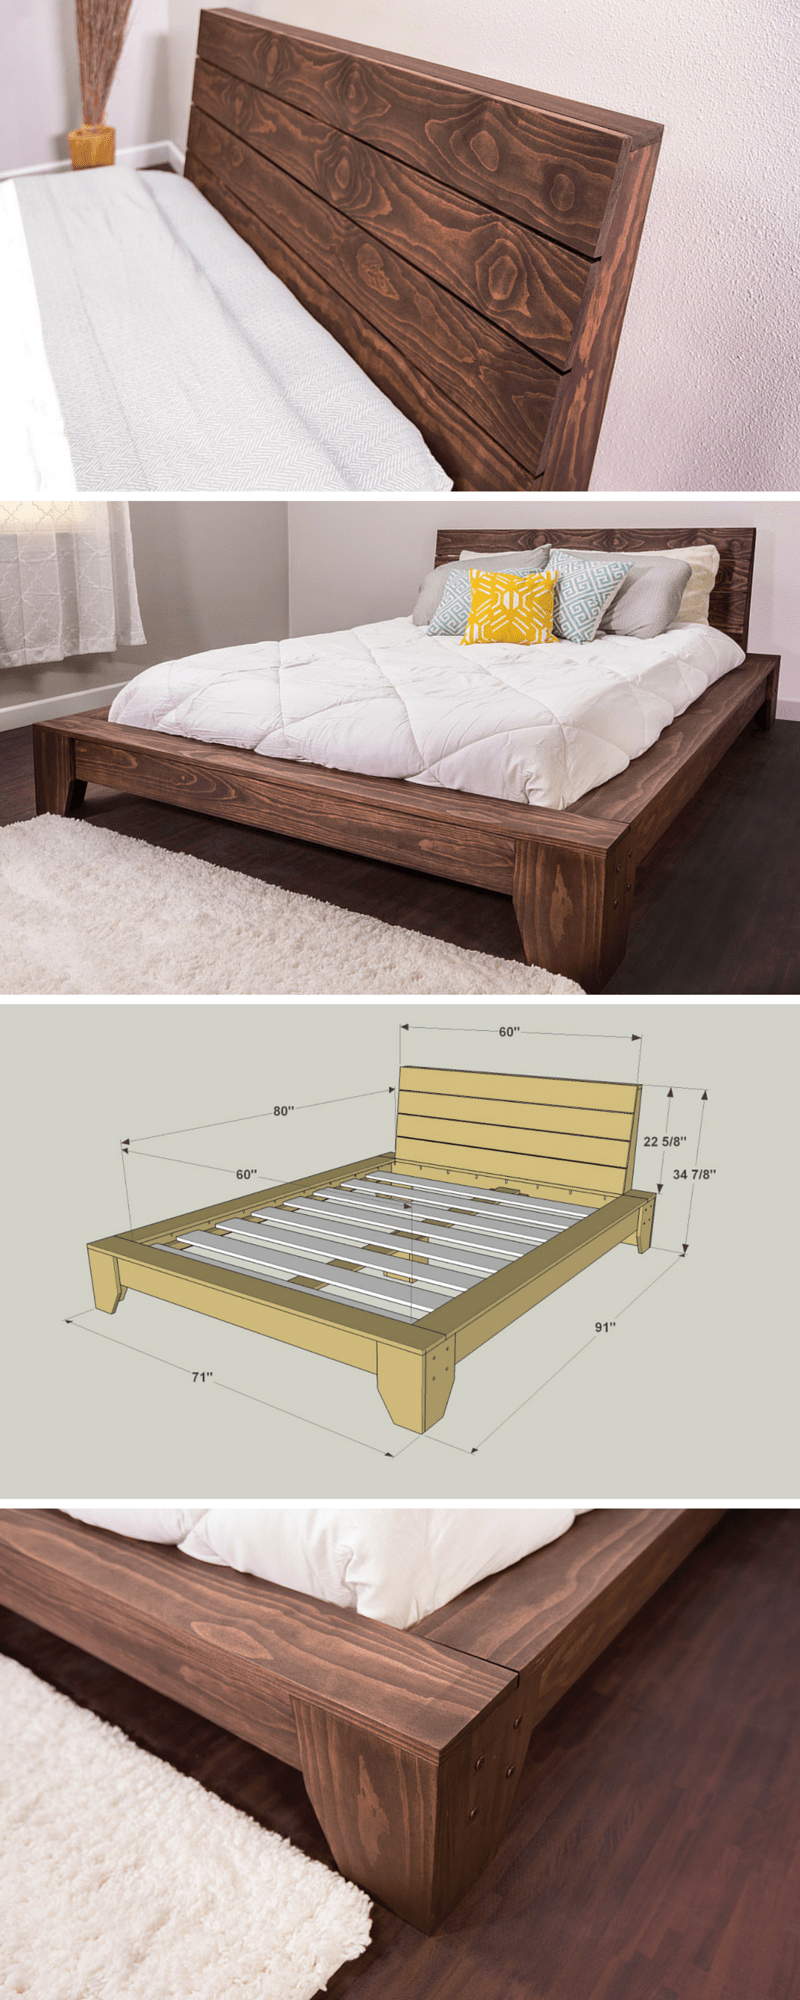 Cheap Wooden Bed Frames 36 Easy Diy Bed Frame Projects To Upgrade Your Bedroom Homelovr